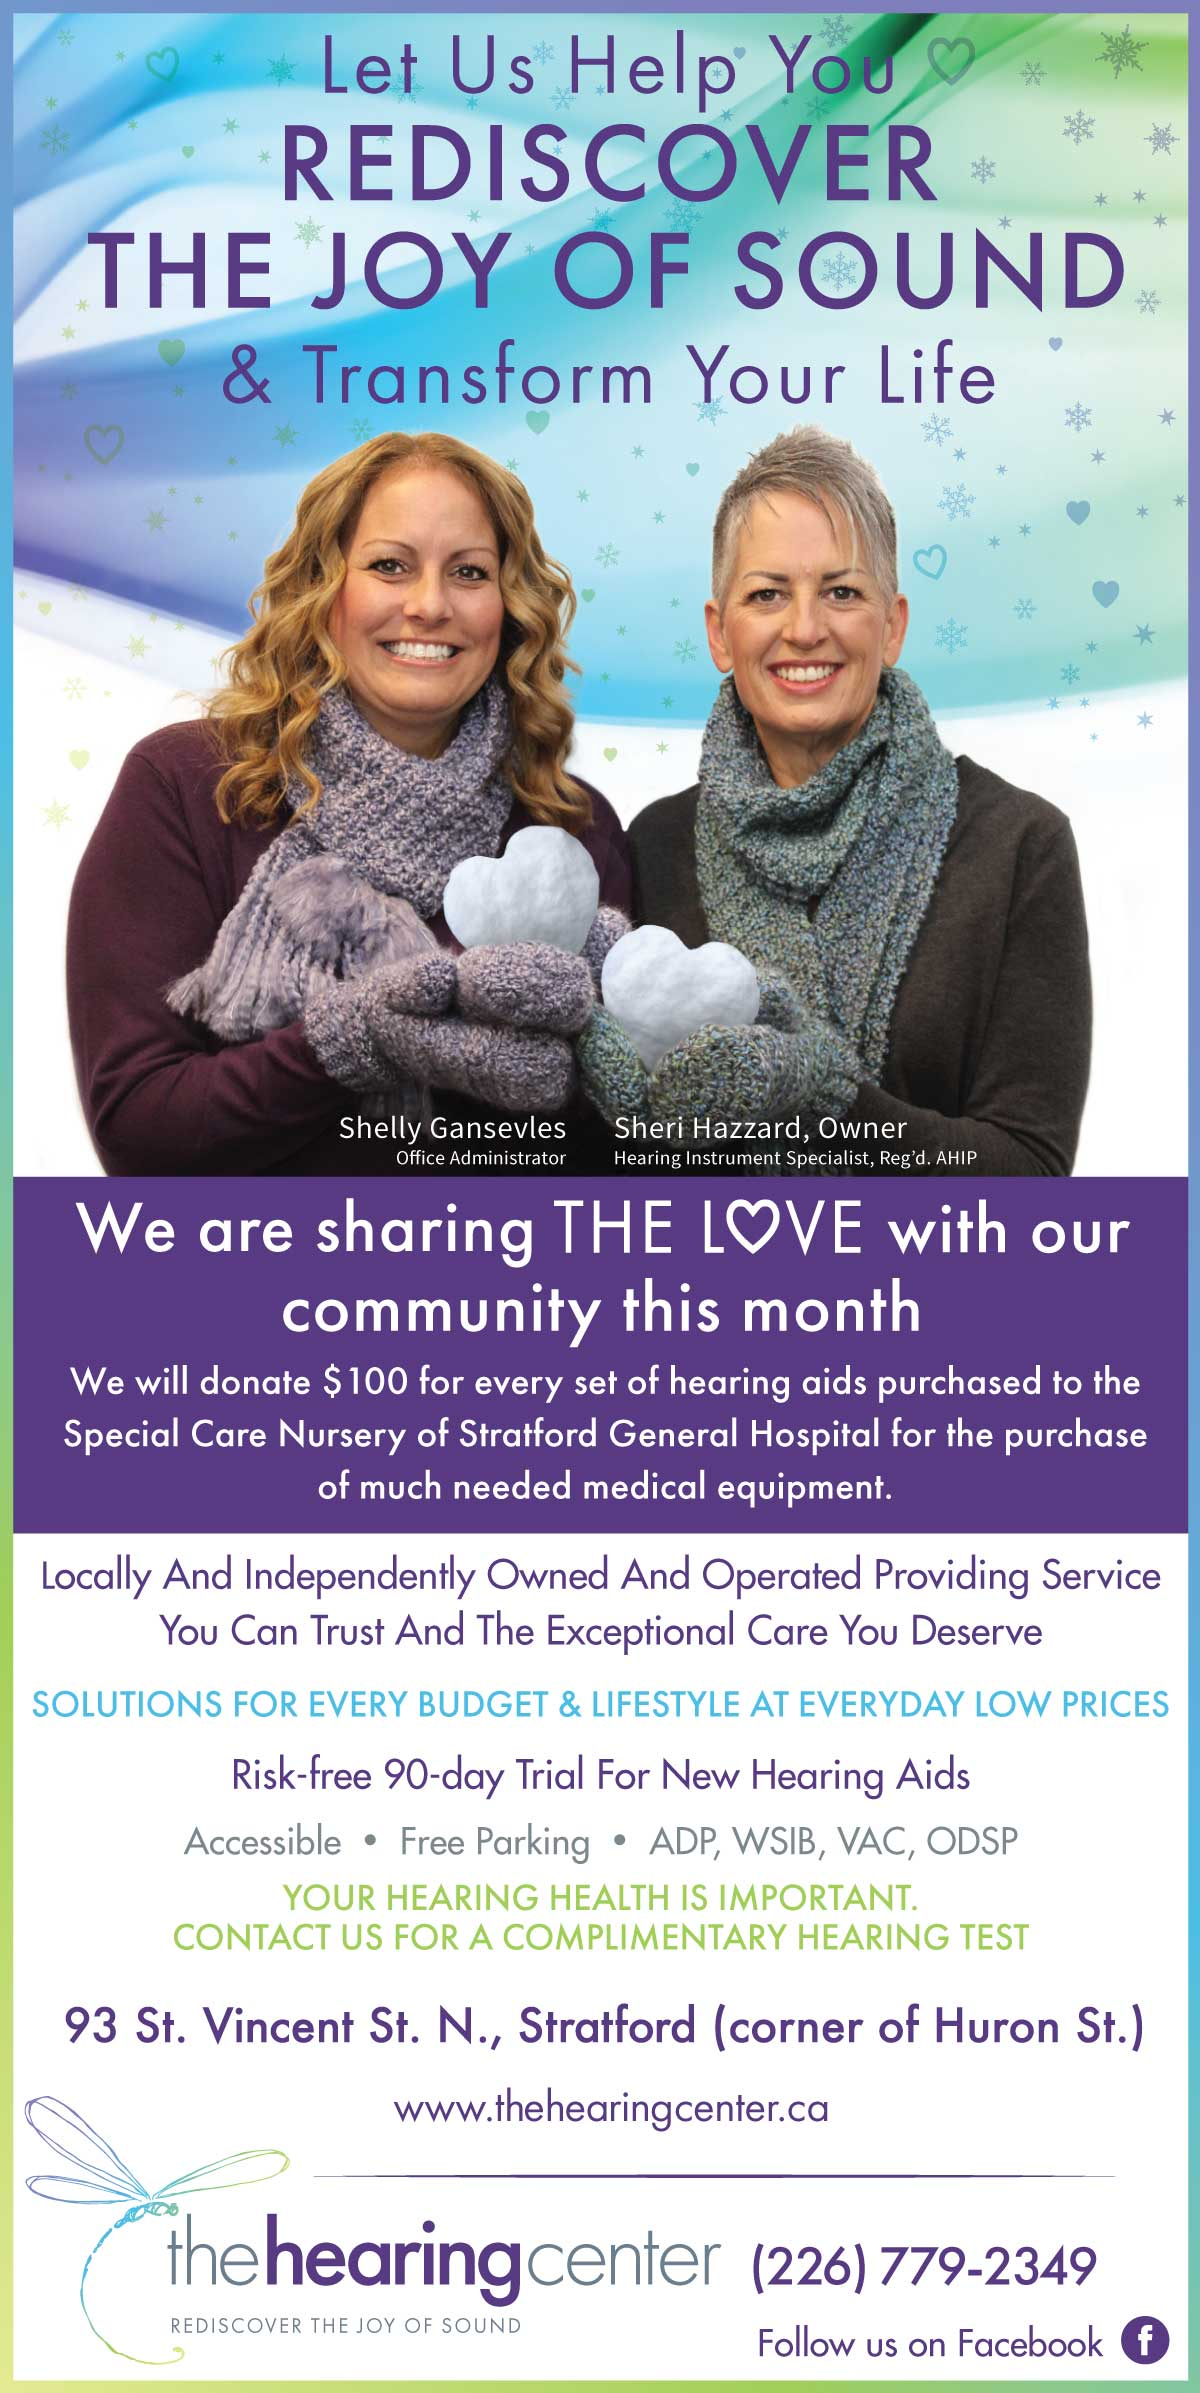 Donate $100 for every set of hearing aids purchases